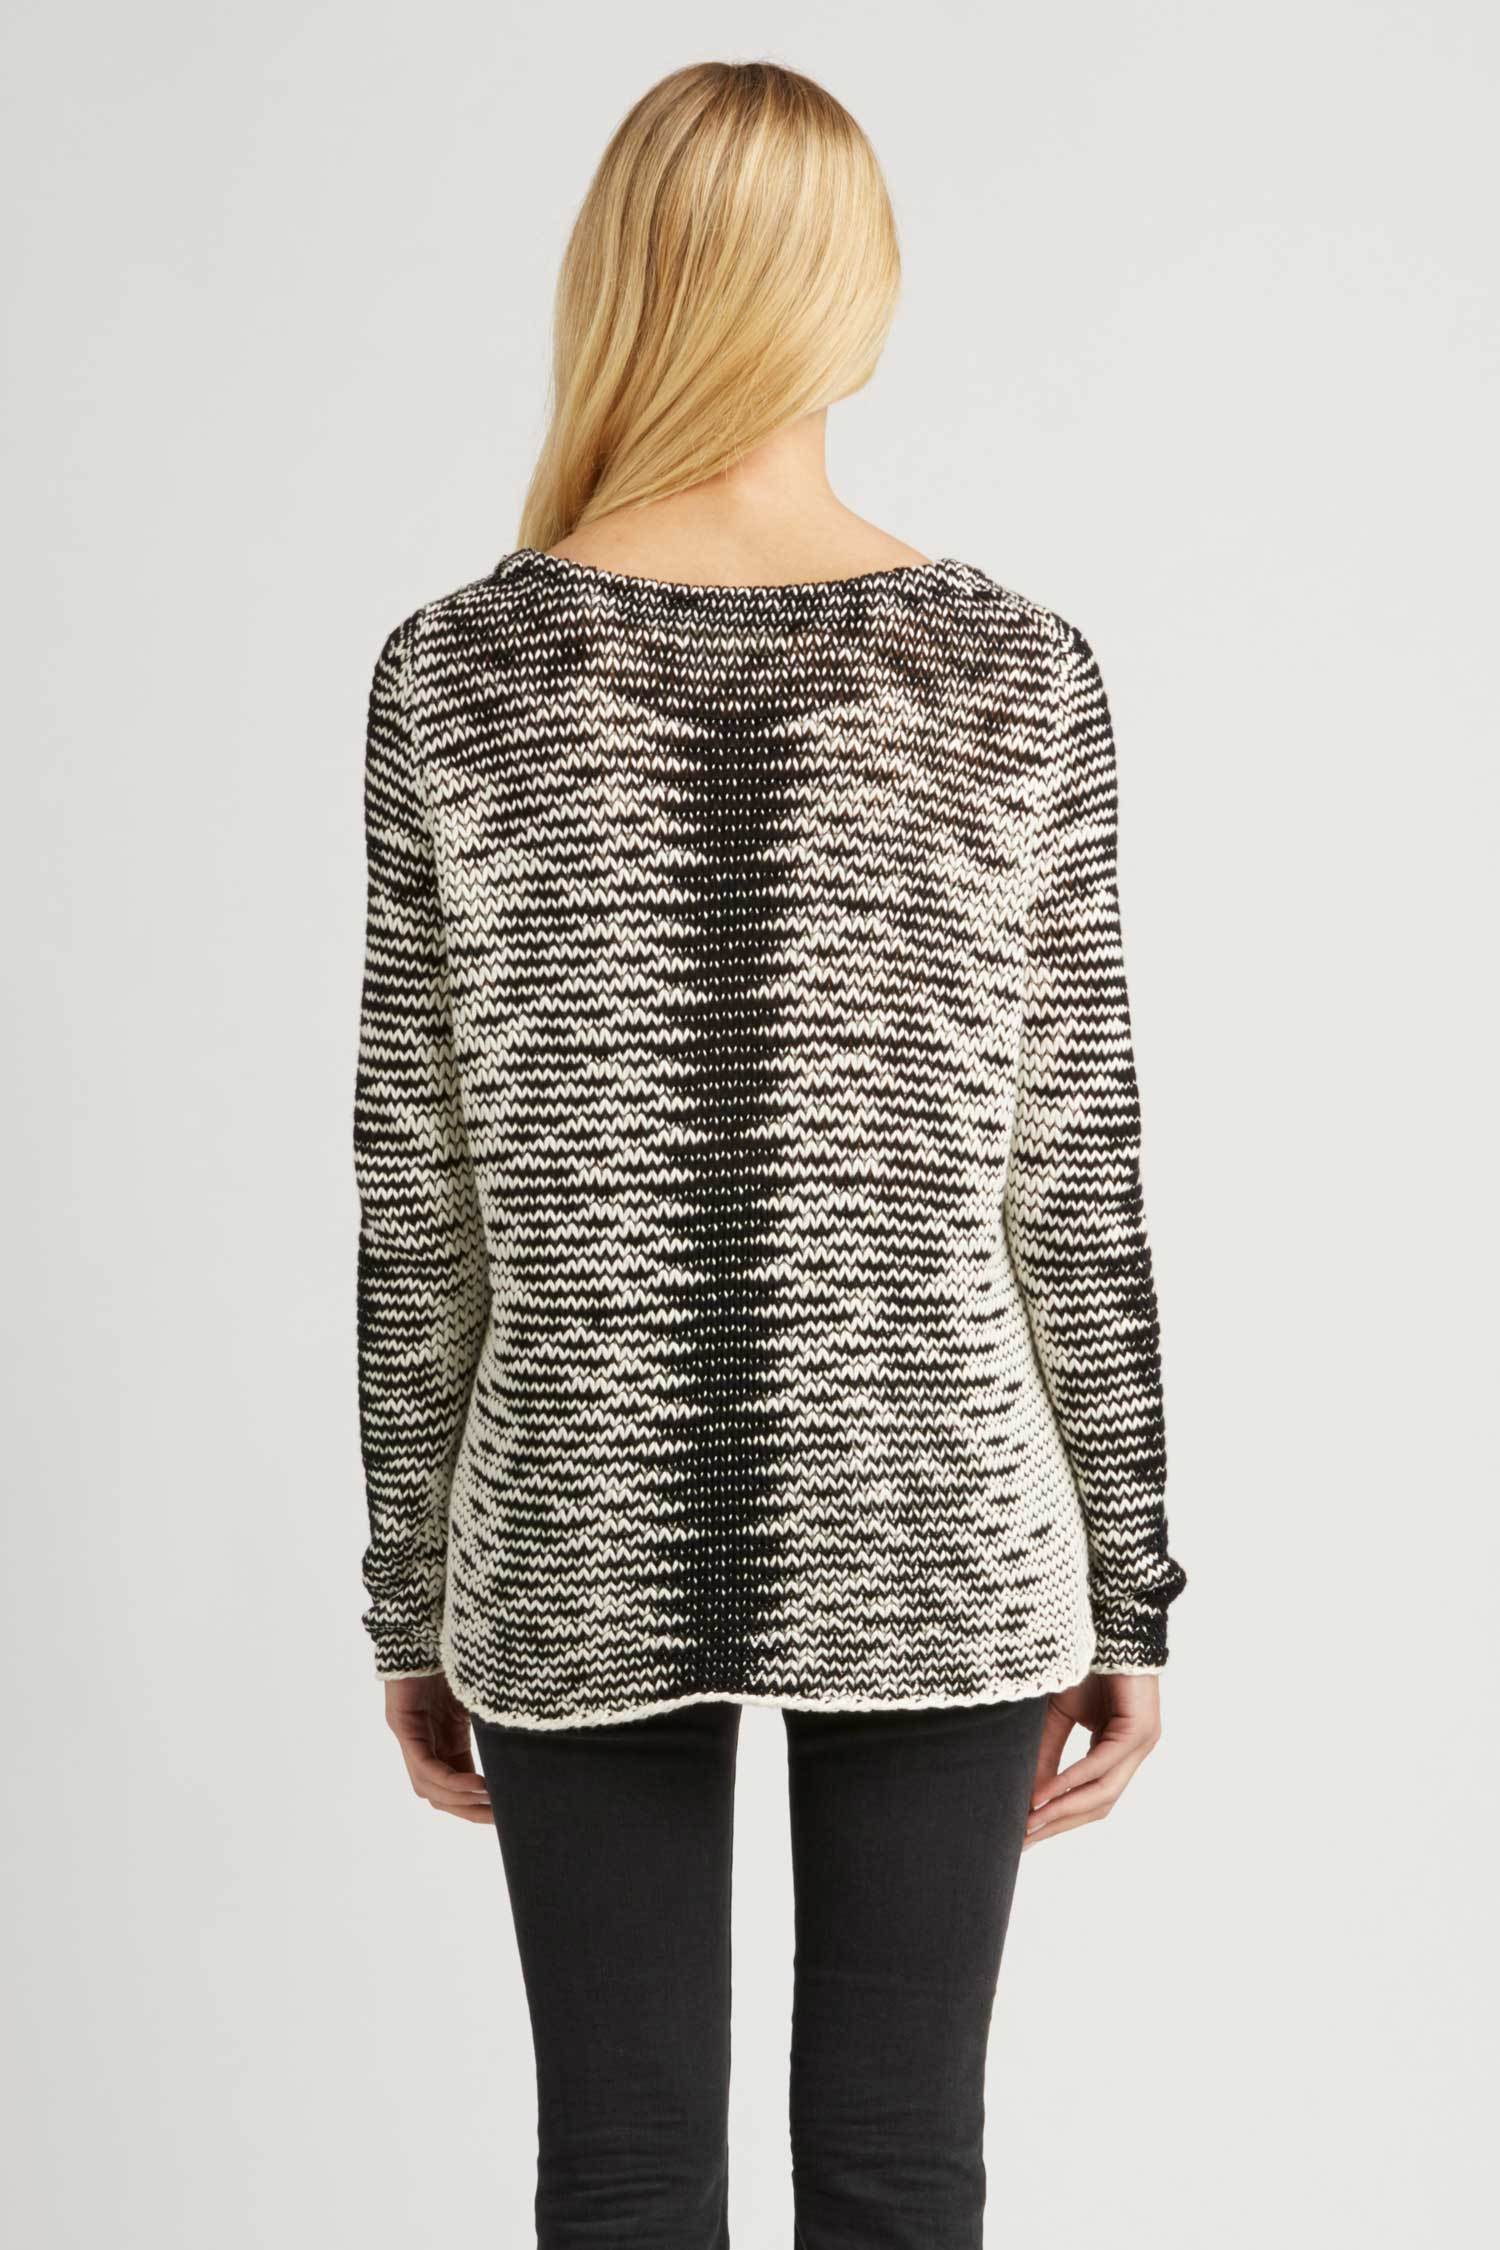 Womens Artisan Knit Sweater | Amaru Pullover from INDIGENOUS